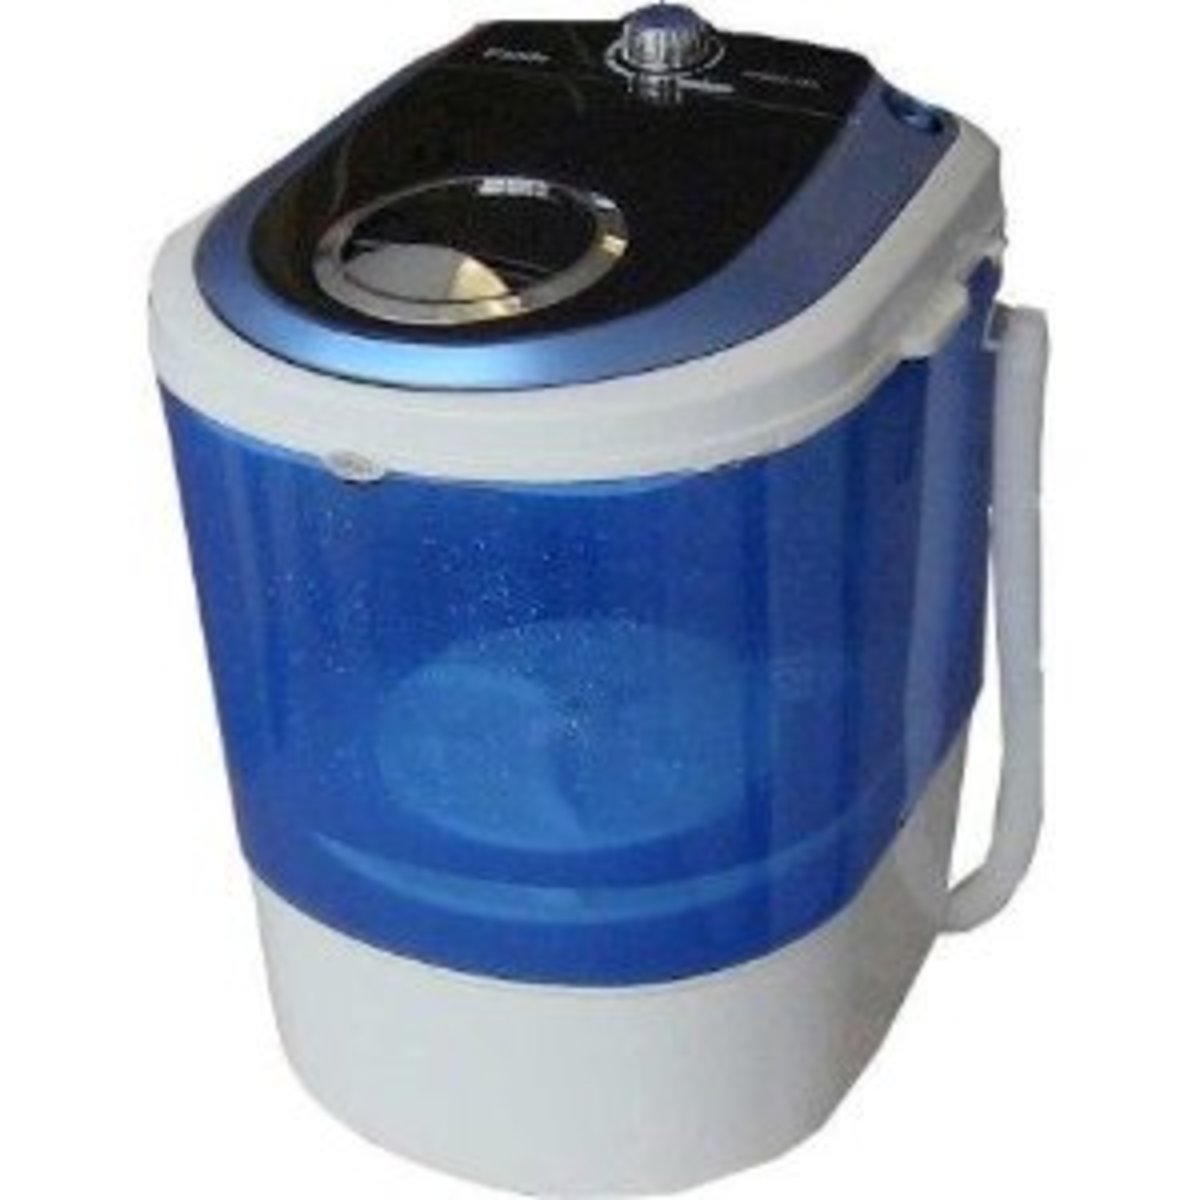 The Best Portable Washing Machine, Small In Size And Capacity ...